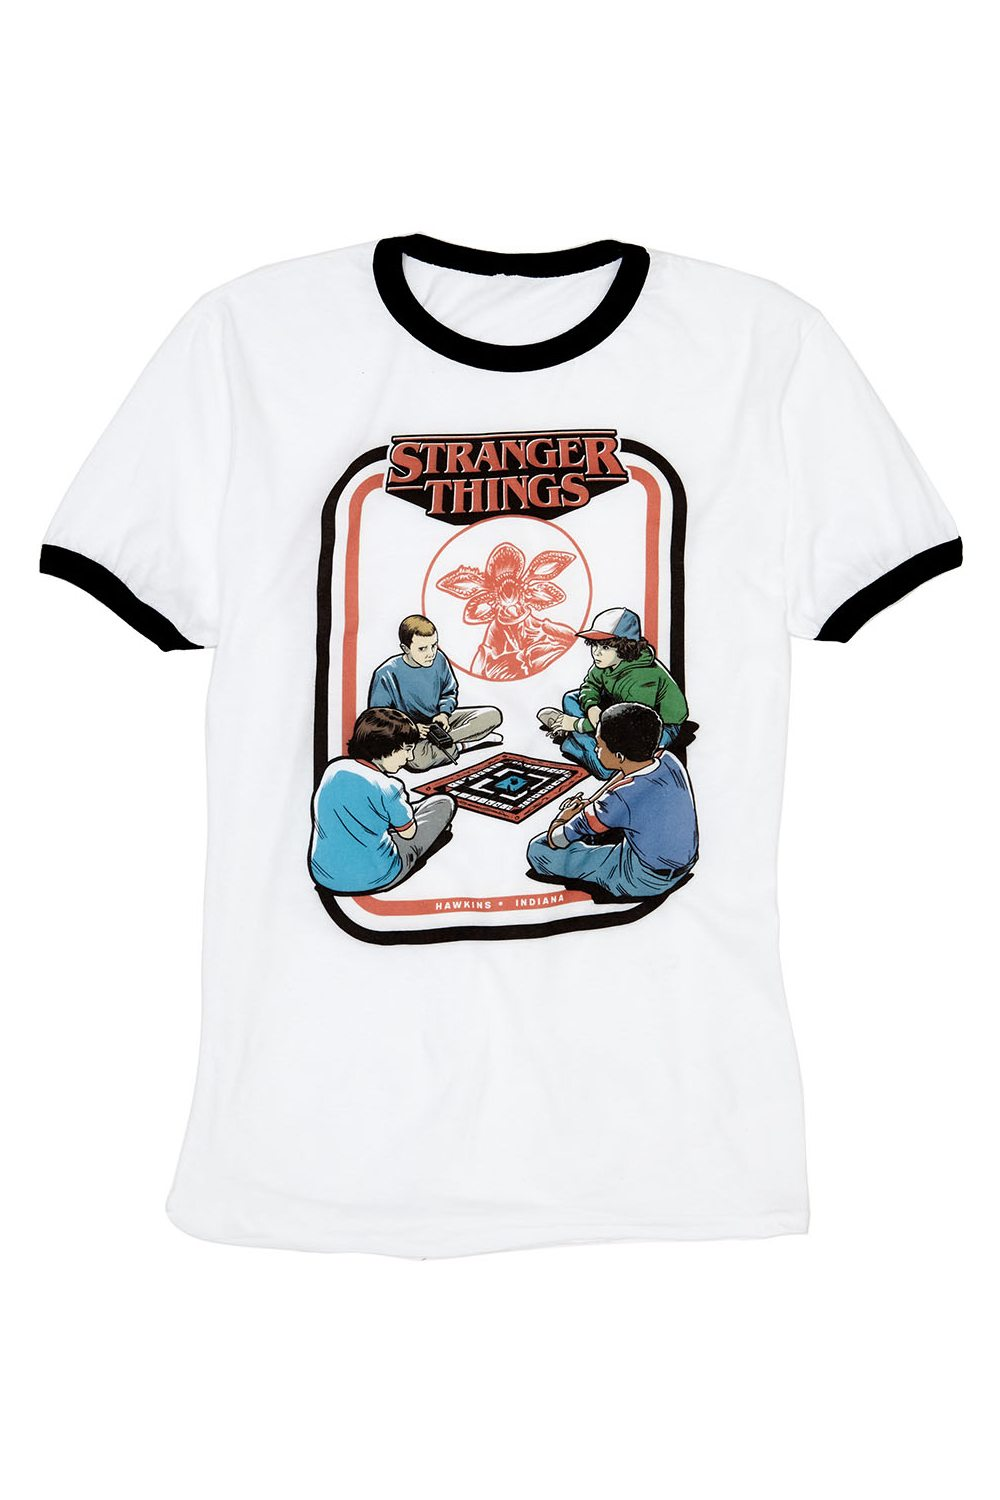 Womens Apparel Stranger Things Ringer Tee - New Stranger Things Season 2 Merchandise on the Way as BoxLunch Teams with Netflix